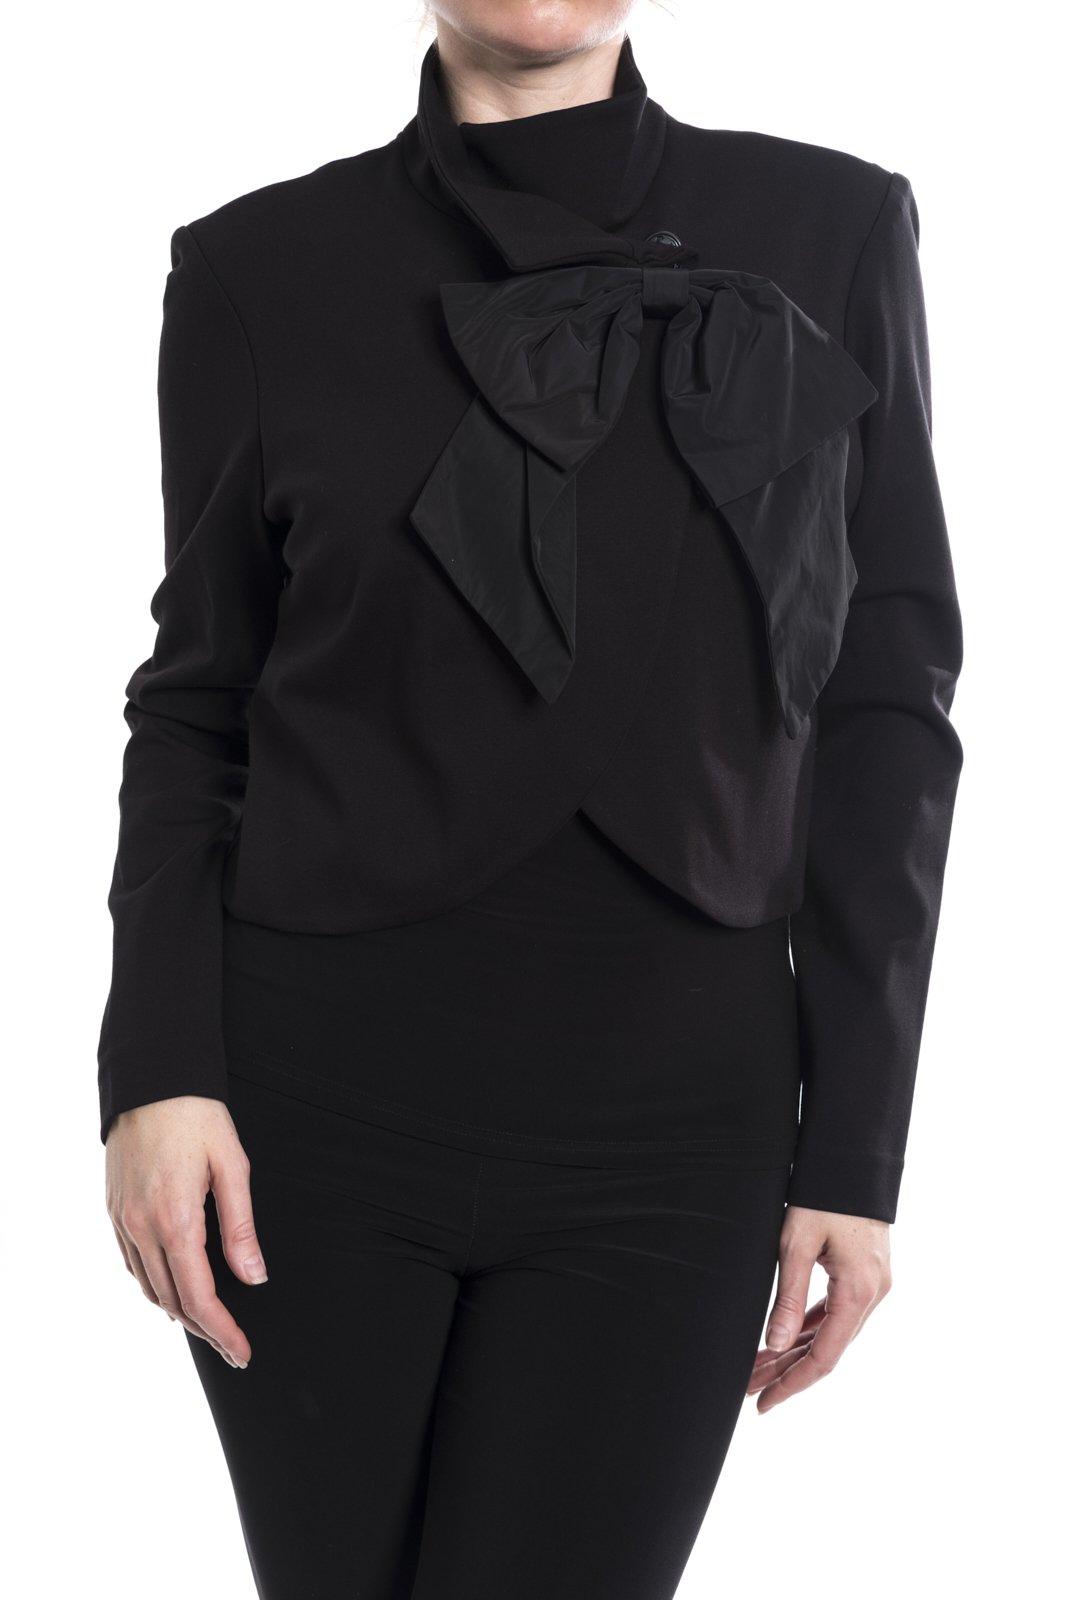 Joseph Ribkoff Cropped Jacket With Bow Accent Style 174676 Size 18